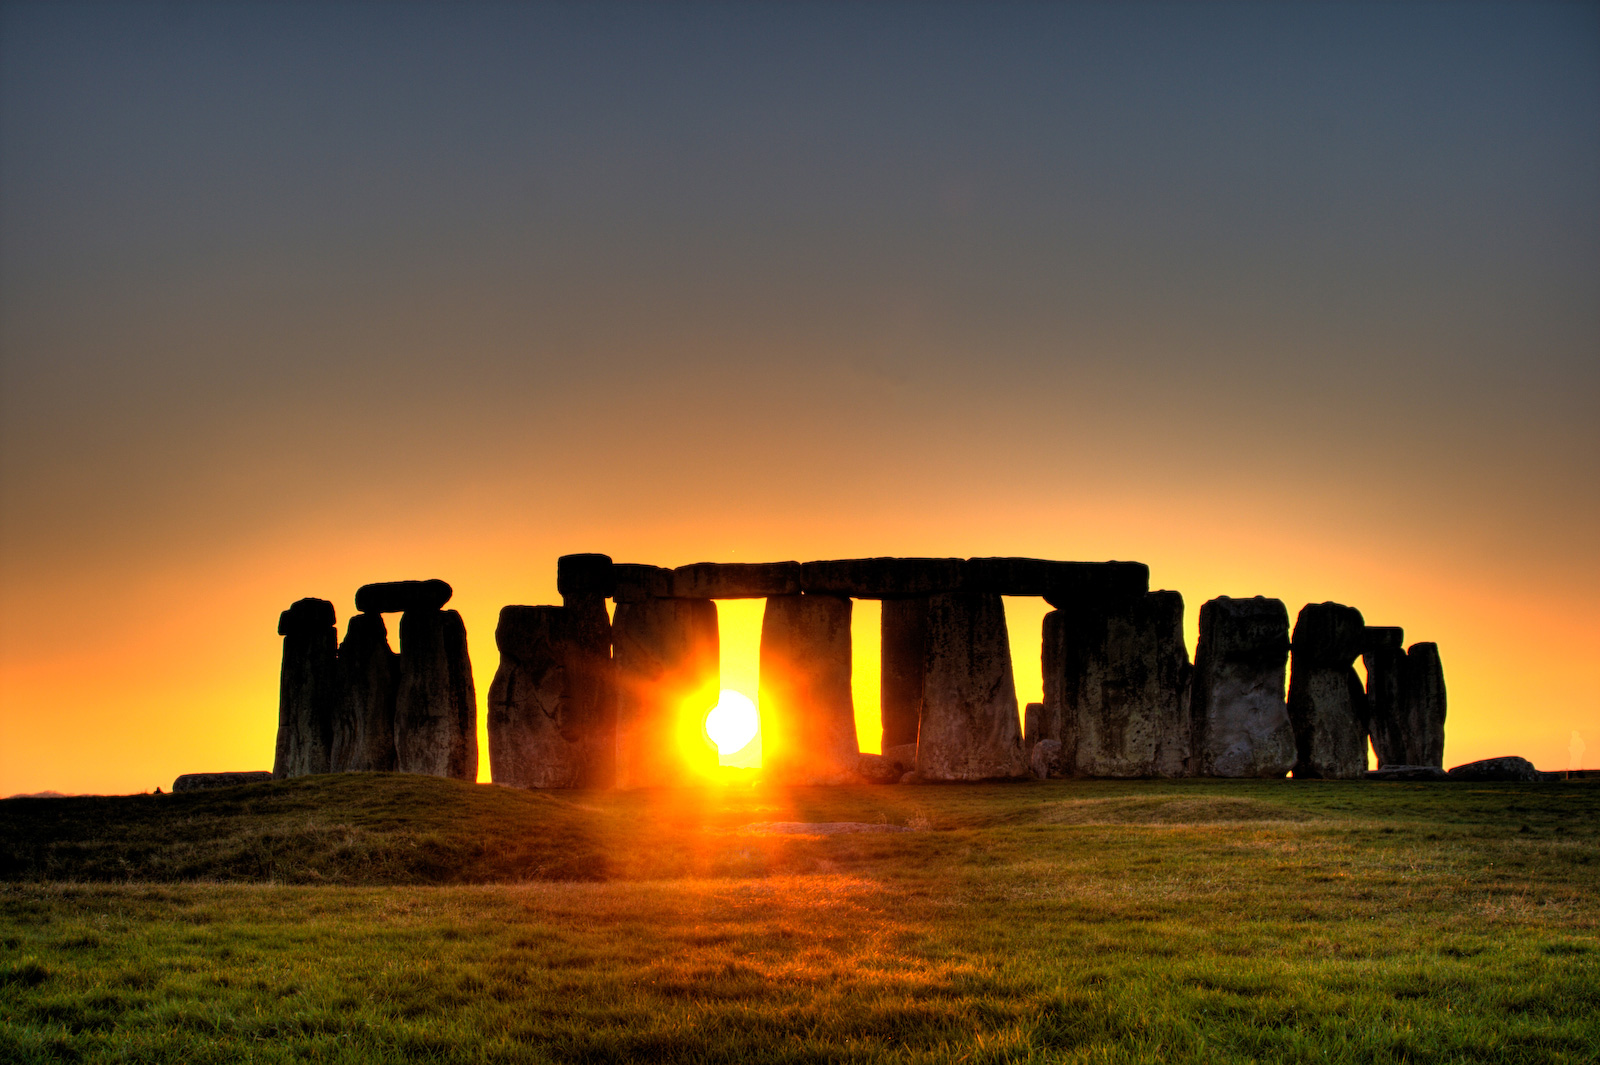 sunset-in-stonehenges-looks-awesome